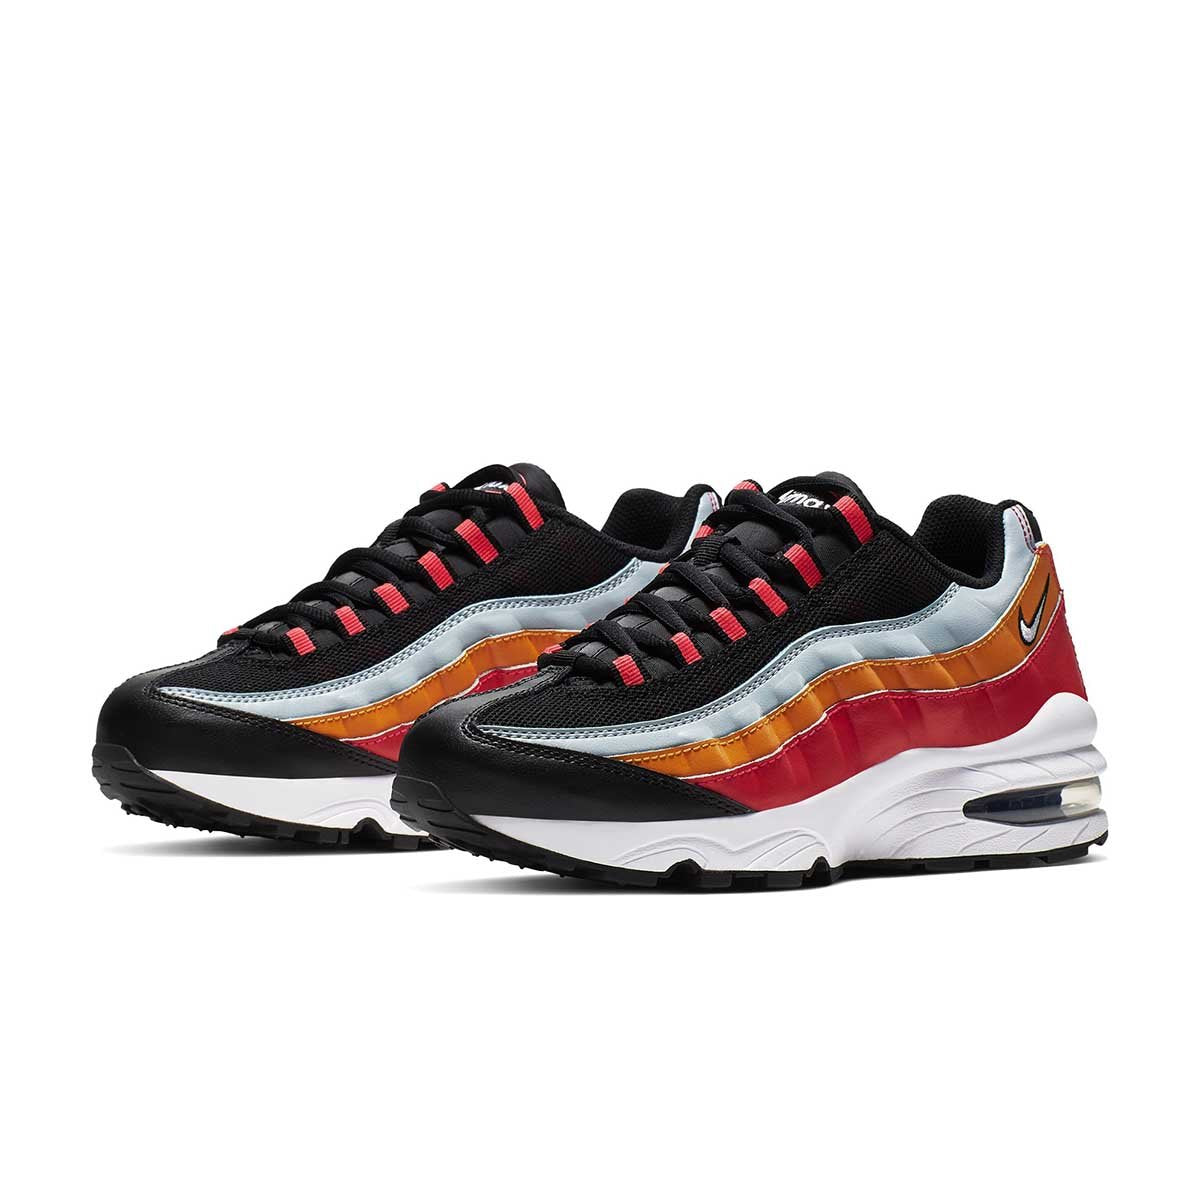 Big Kids Boys' Nike Air Max '95 (GS) Shoe